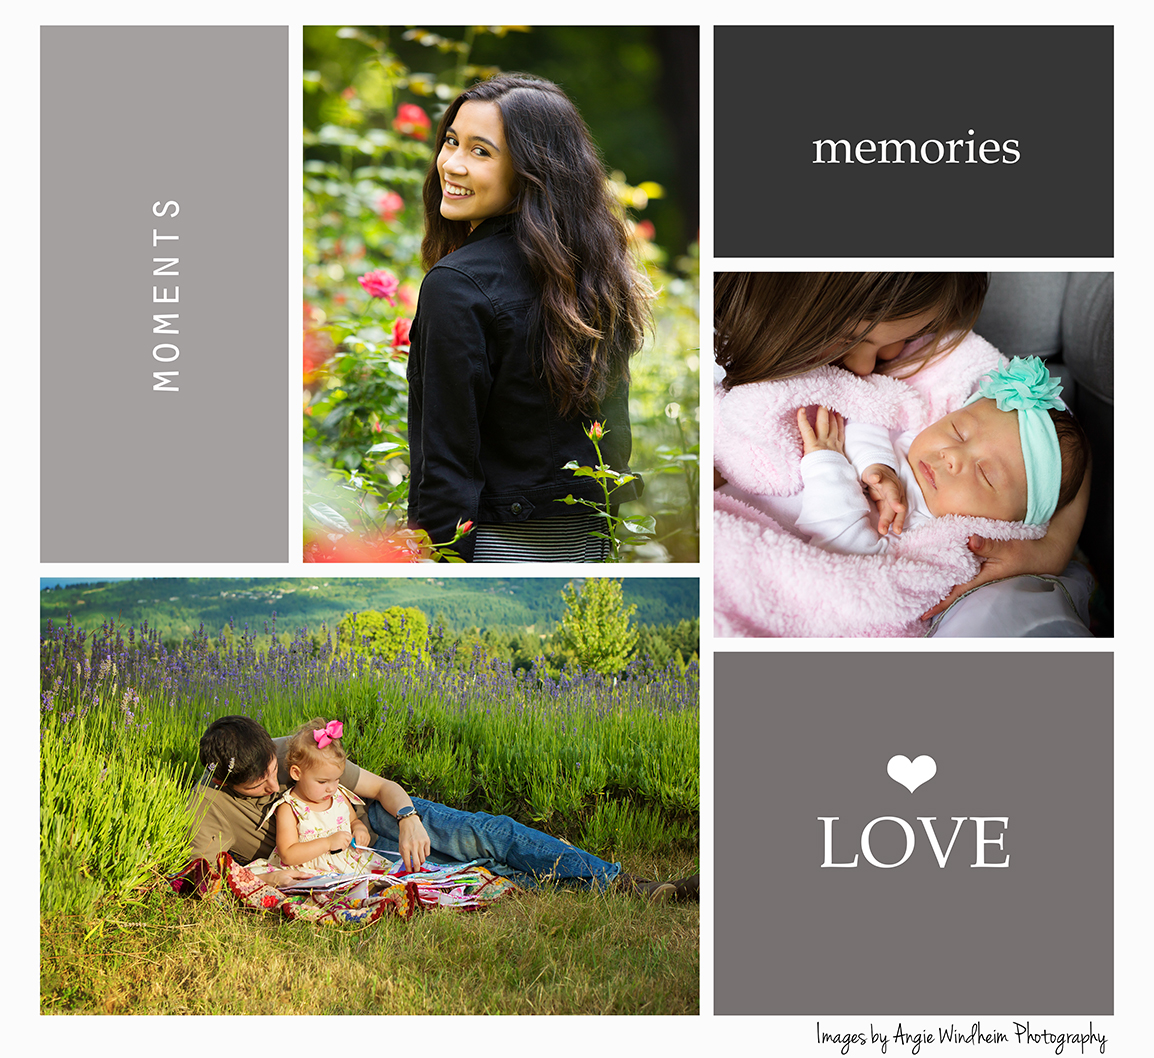 Angie Windheim Photography, professional portraits for families and high school seniors in Oregon